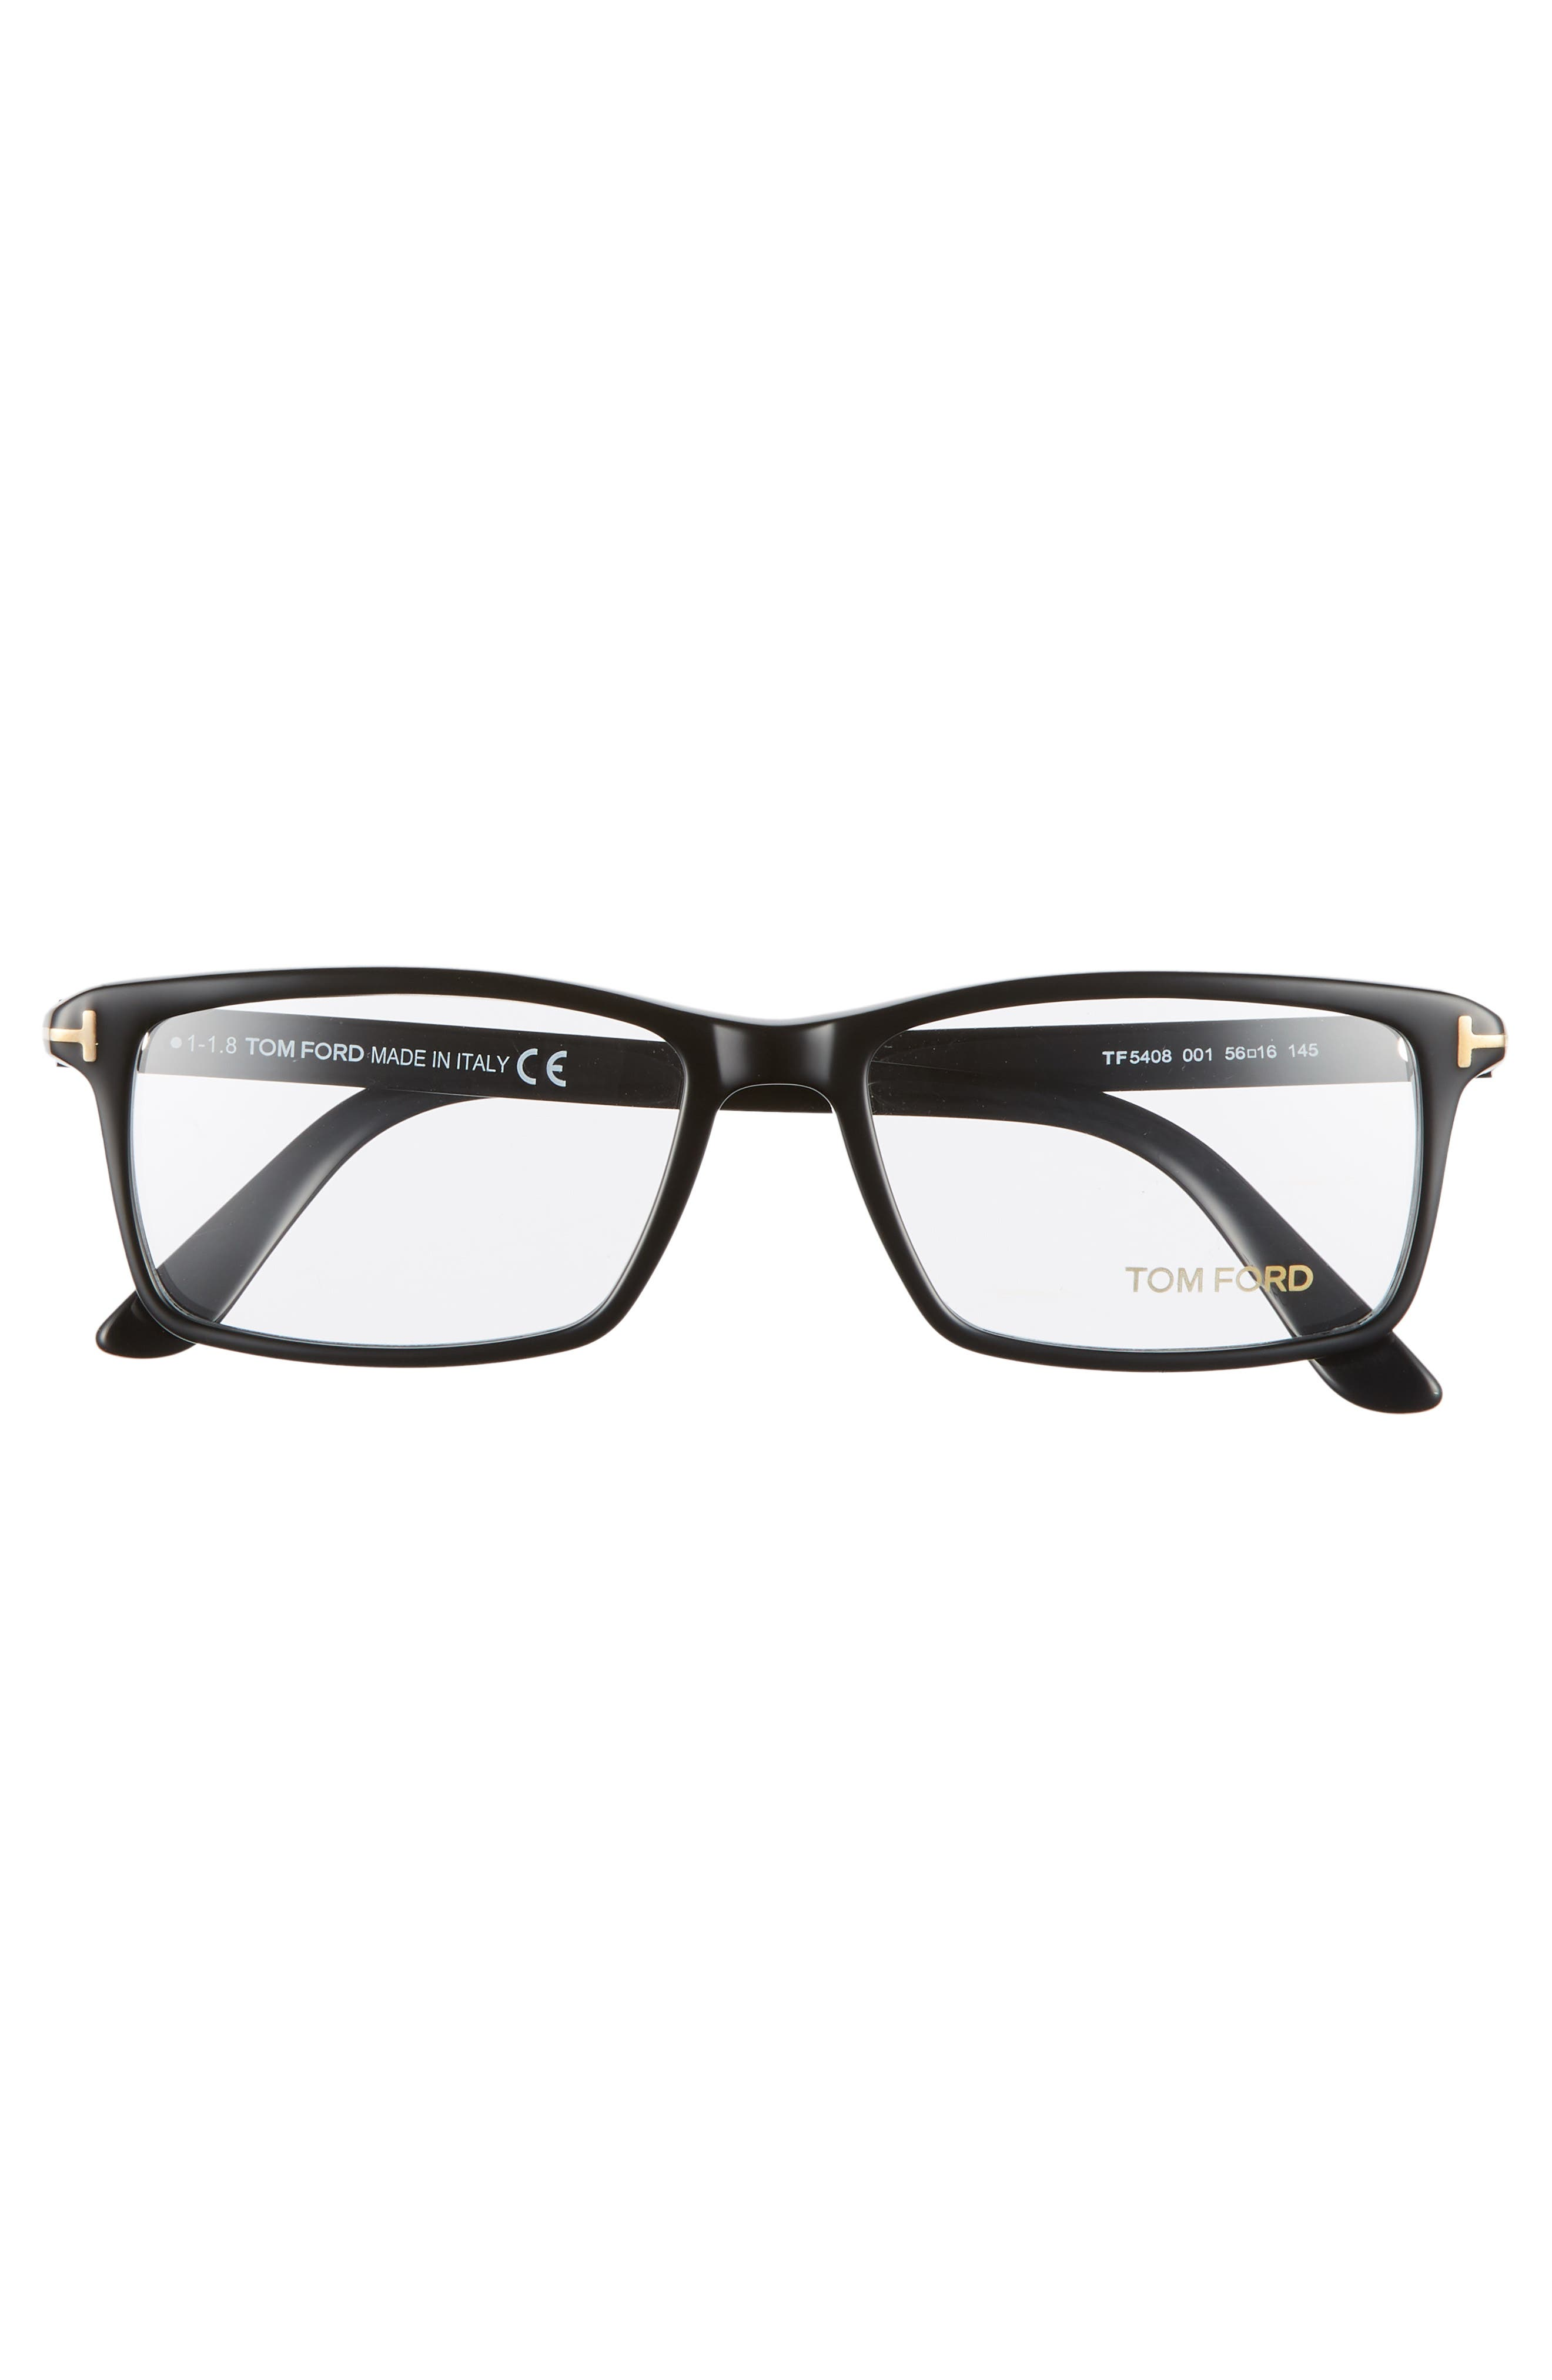 56mm Rectangle Optical Glasses,                             Alternate thumbnail 3, color,                             SHINY BLACK/ SHINY ROSE GOLD